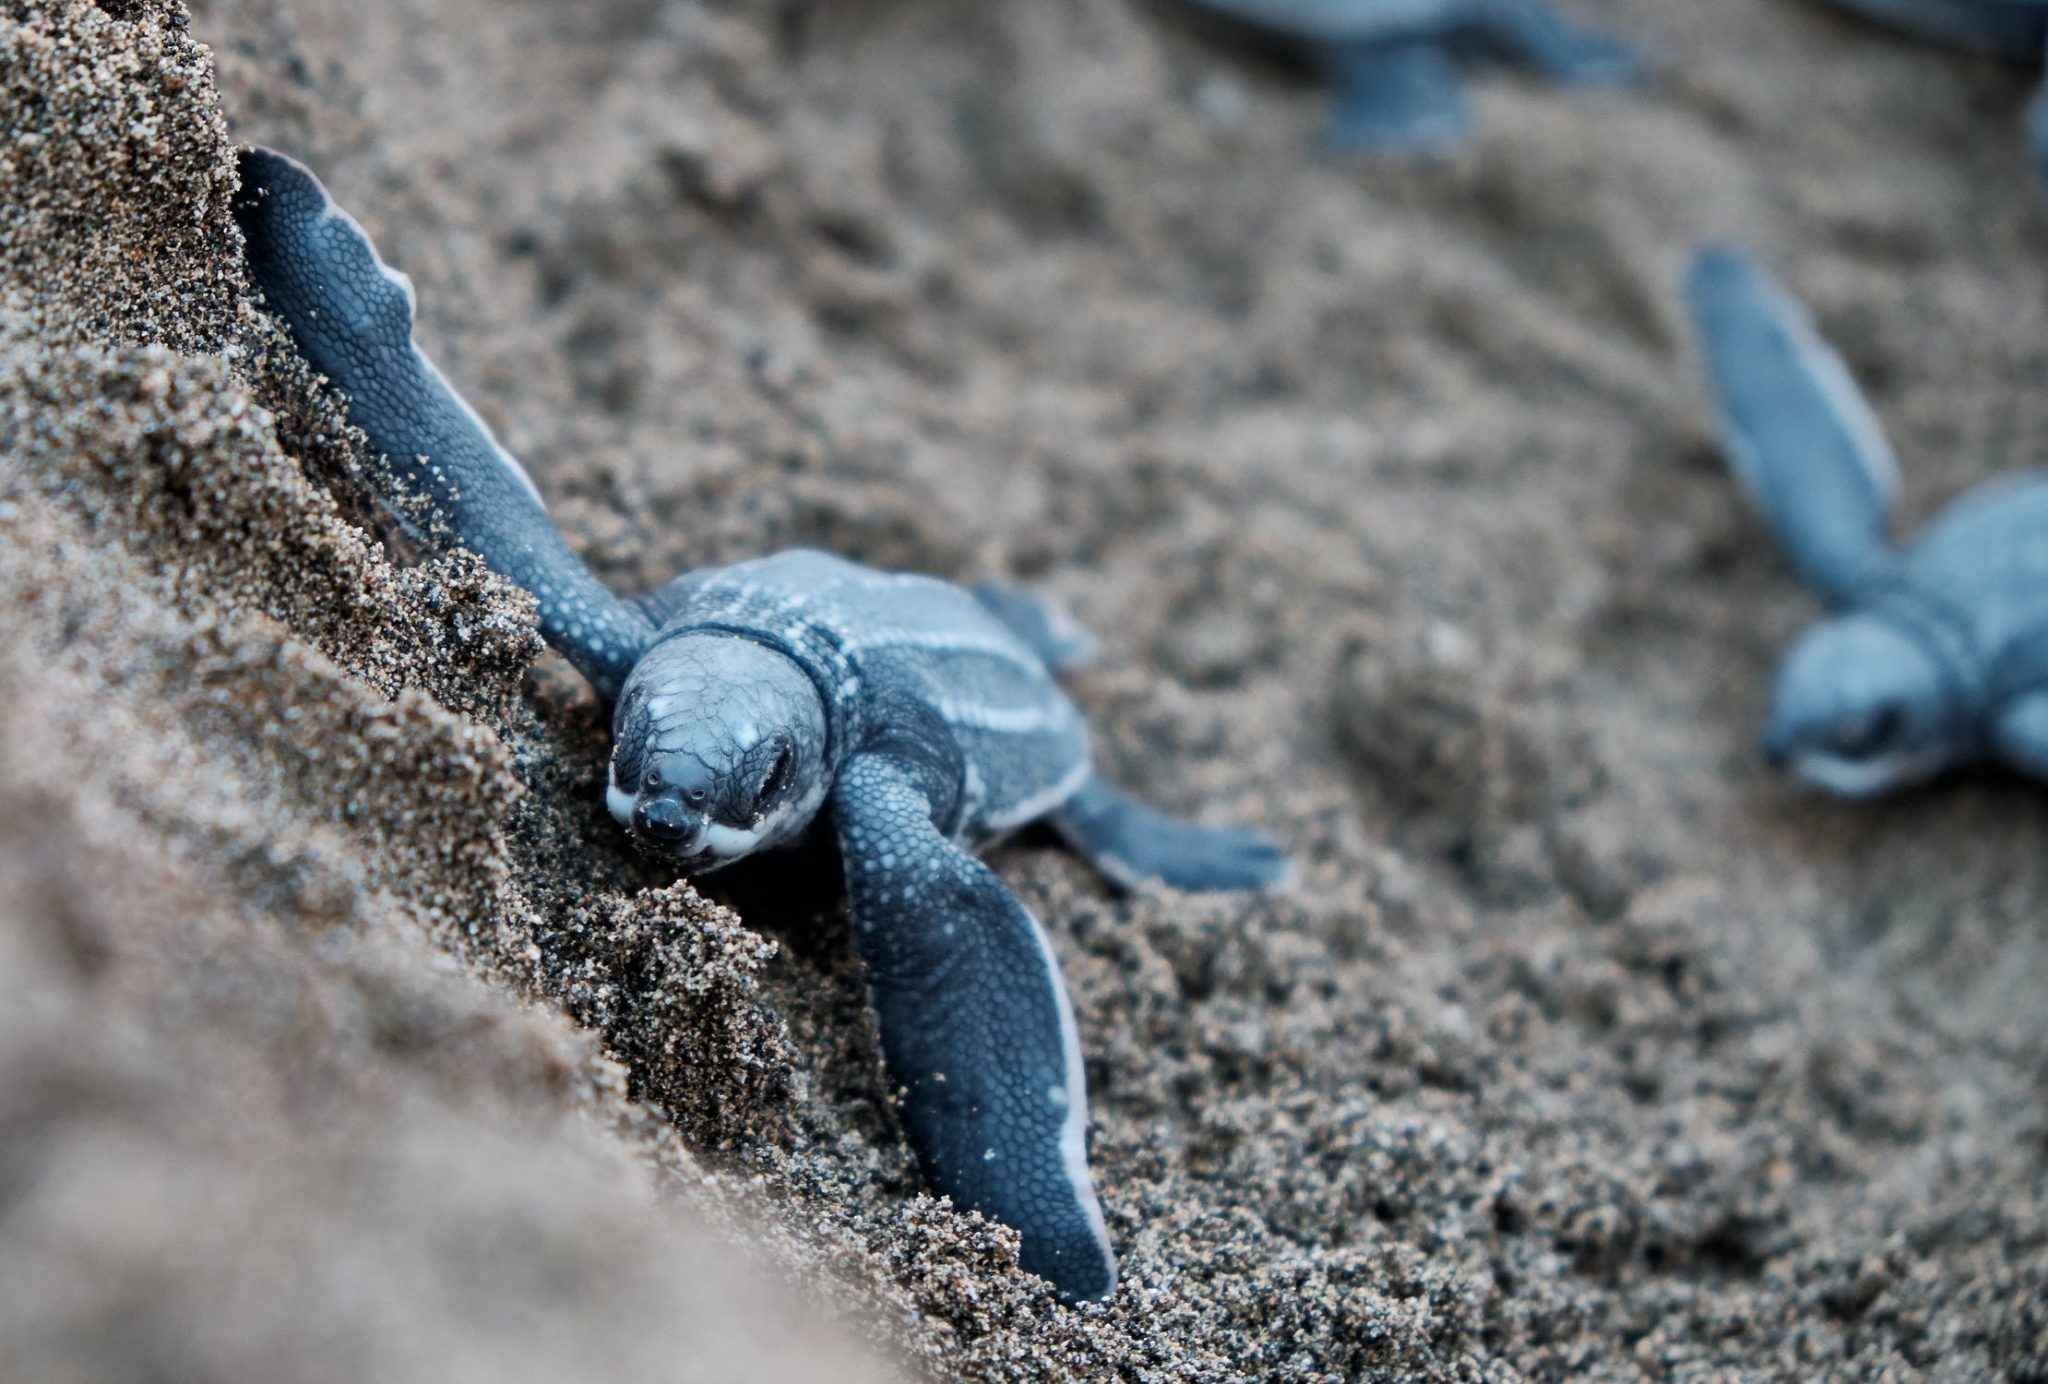 How Many Babies Do Turtles Have - How Often & How Many?